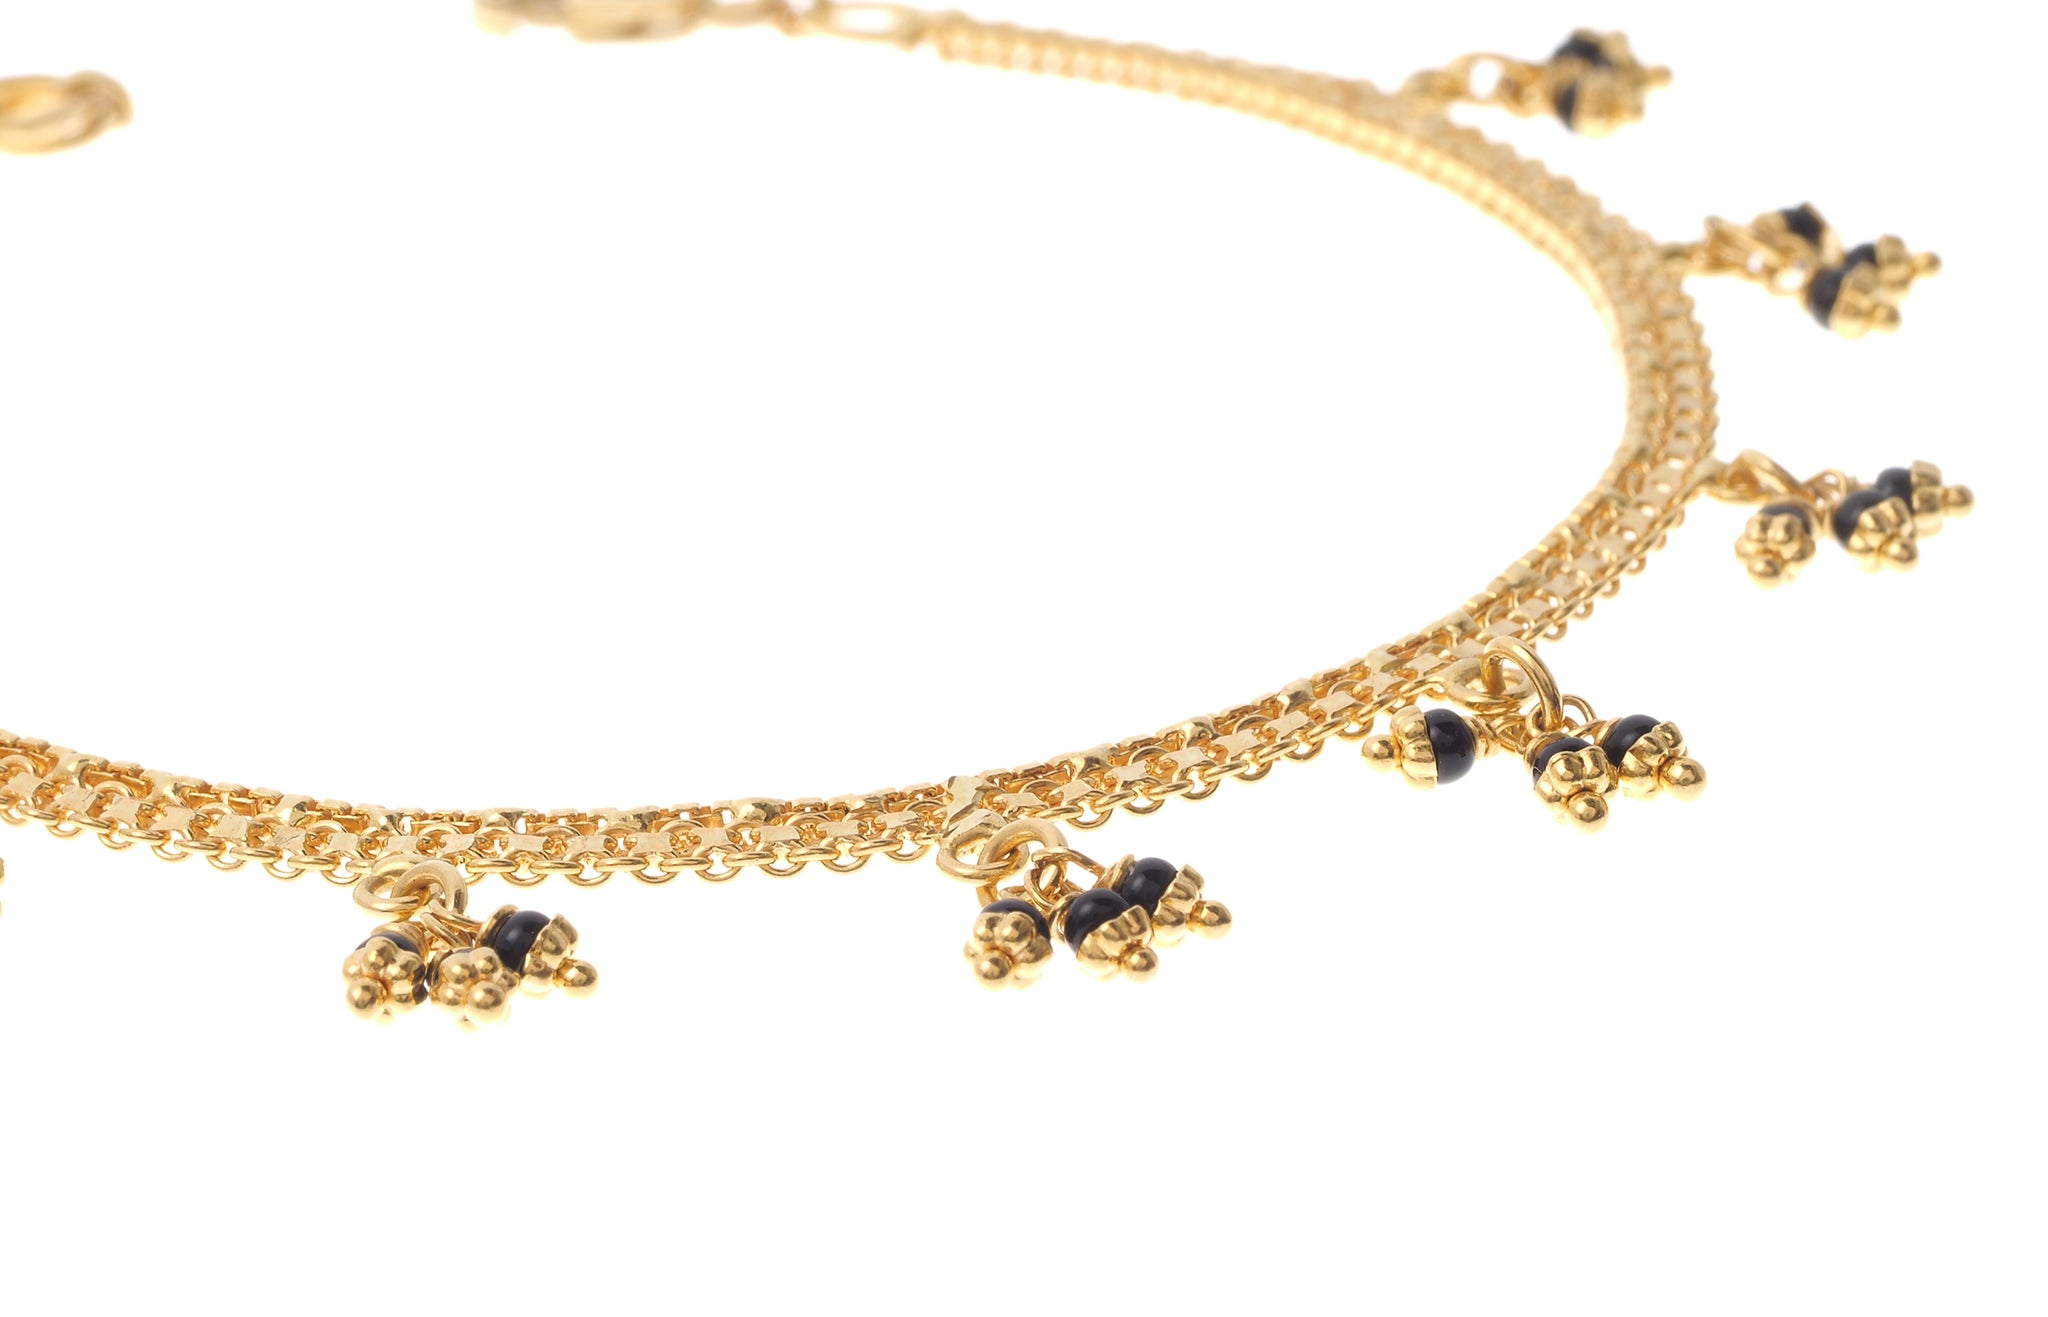 22ct Gold Ladies Bracelet with Black Bead Drops (7.9g) LBR-5335